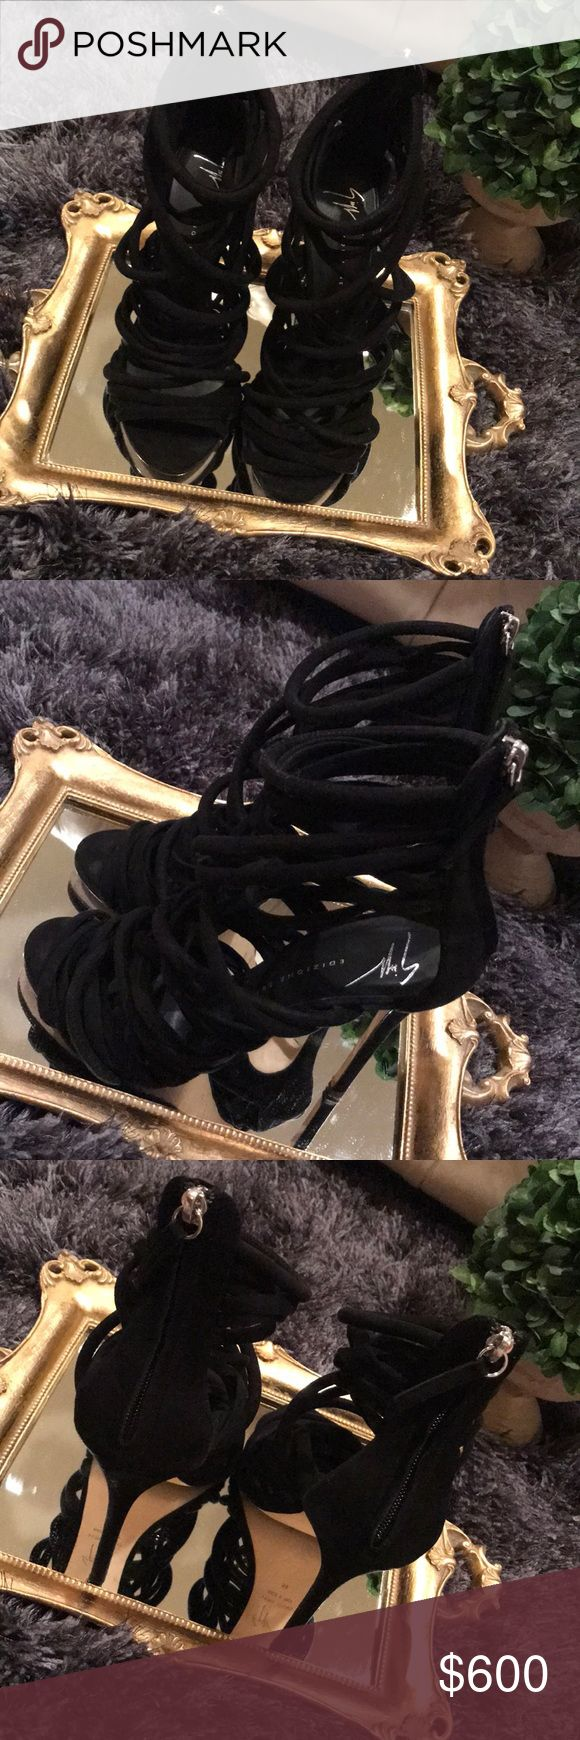 "✨Giuseppe Zanotti Design✨ Special Edition ""Runway"" Kanye West used these in fashion Show  Authentic/ pre-owned/ worn twice/ great condition Black Suede/ comes with box and dust bag Giuseppe Zanotti Shoes Heels #giuseppezanottiheelskanyewest"